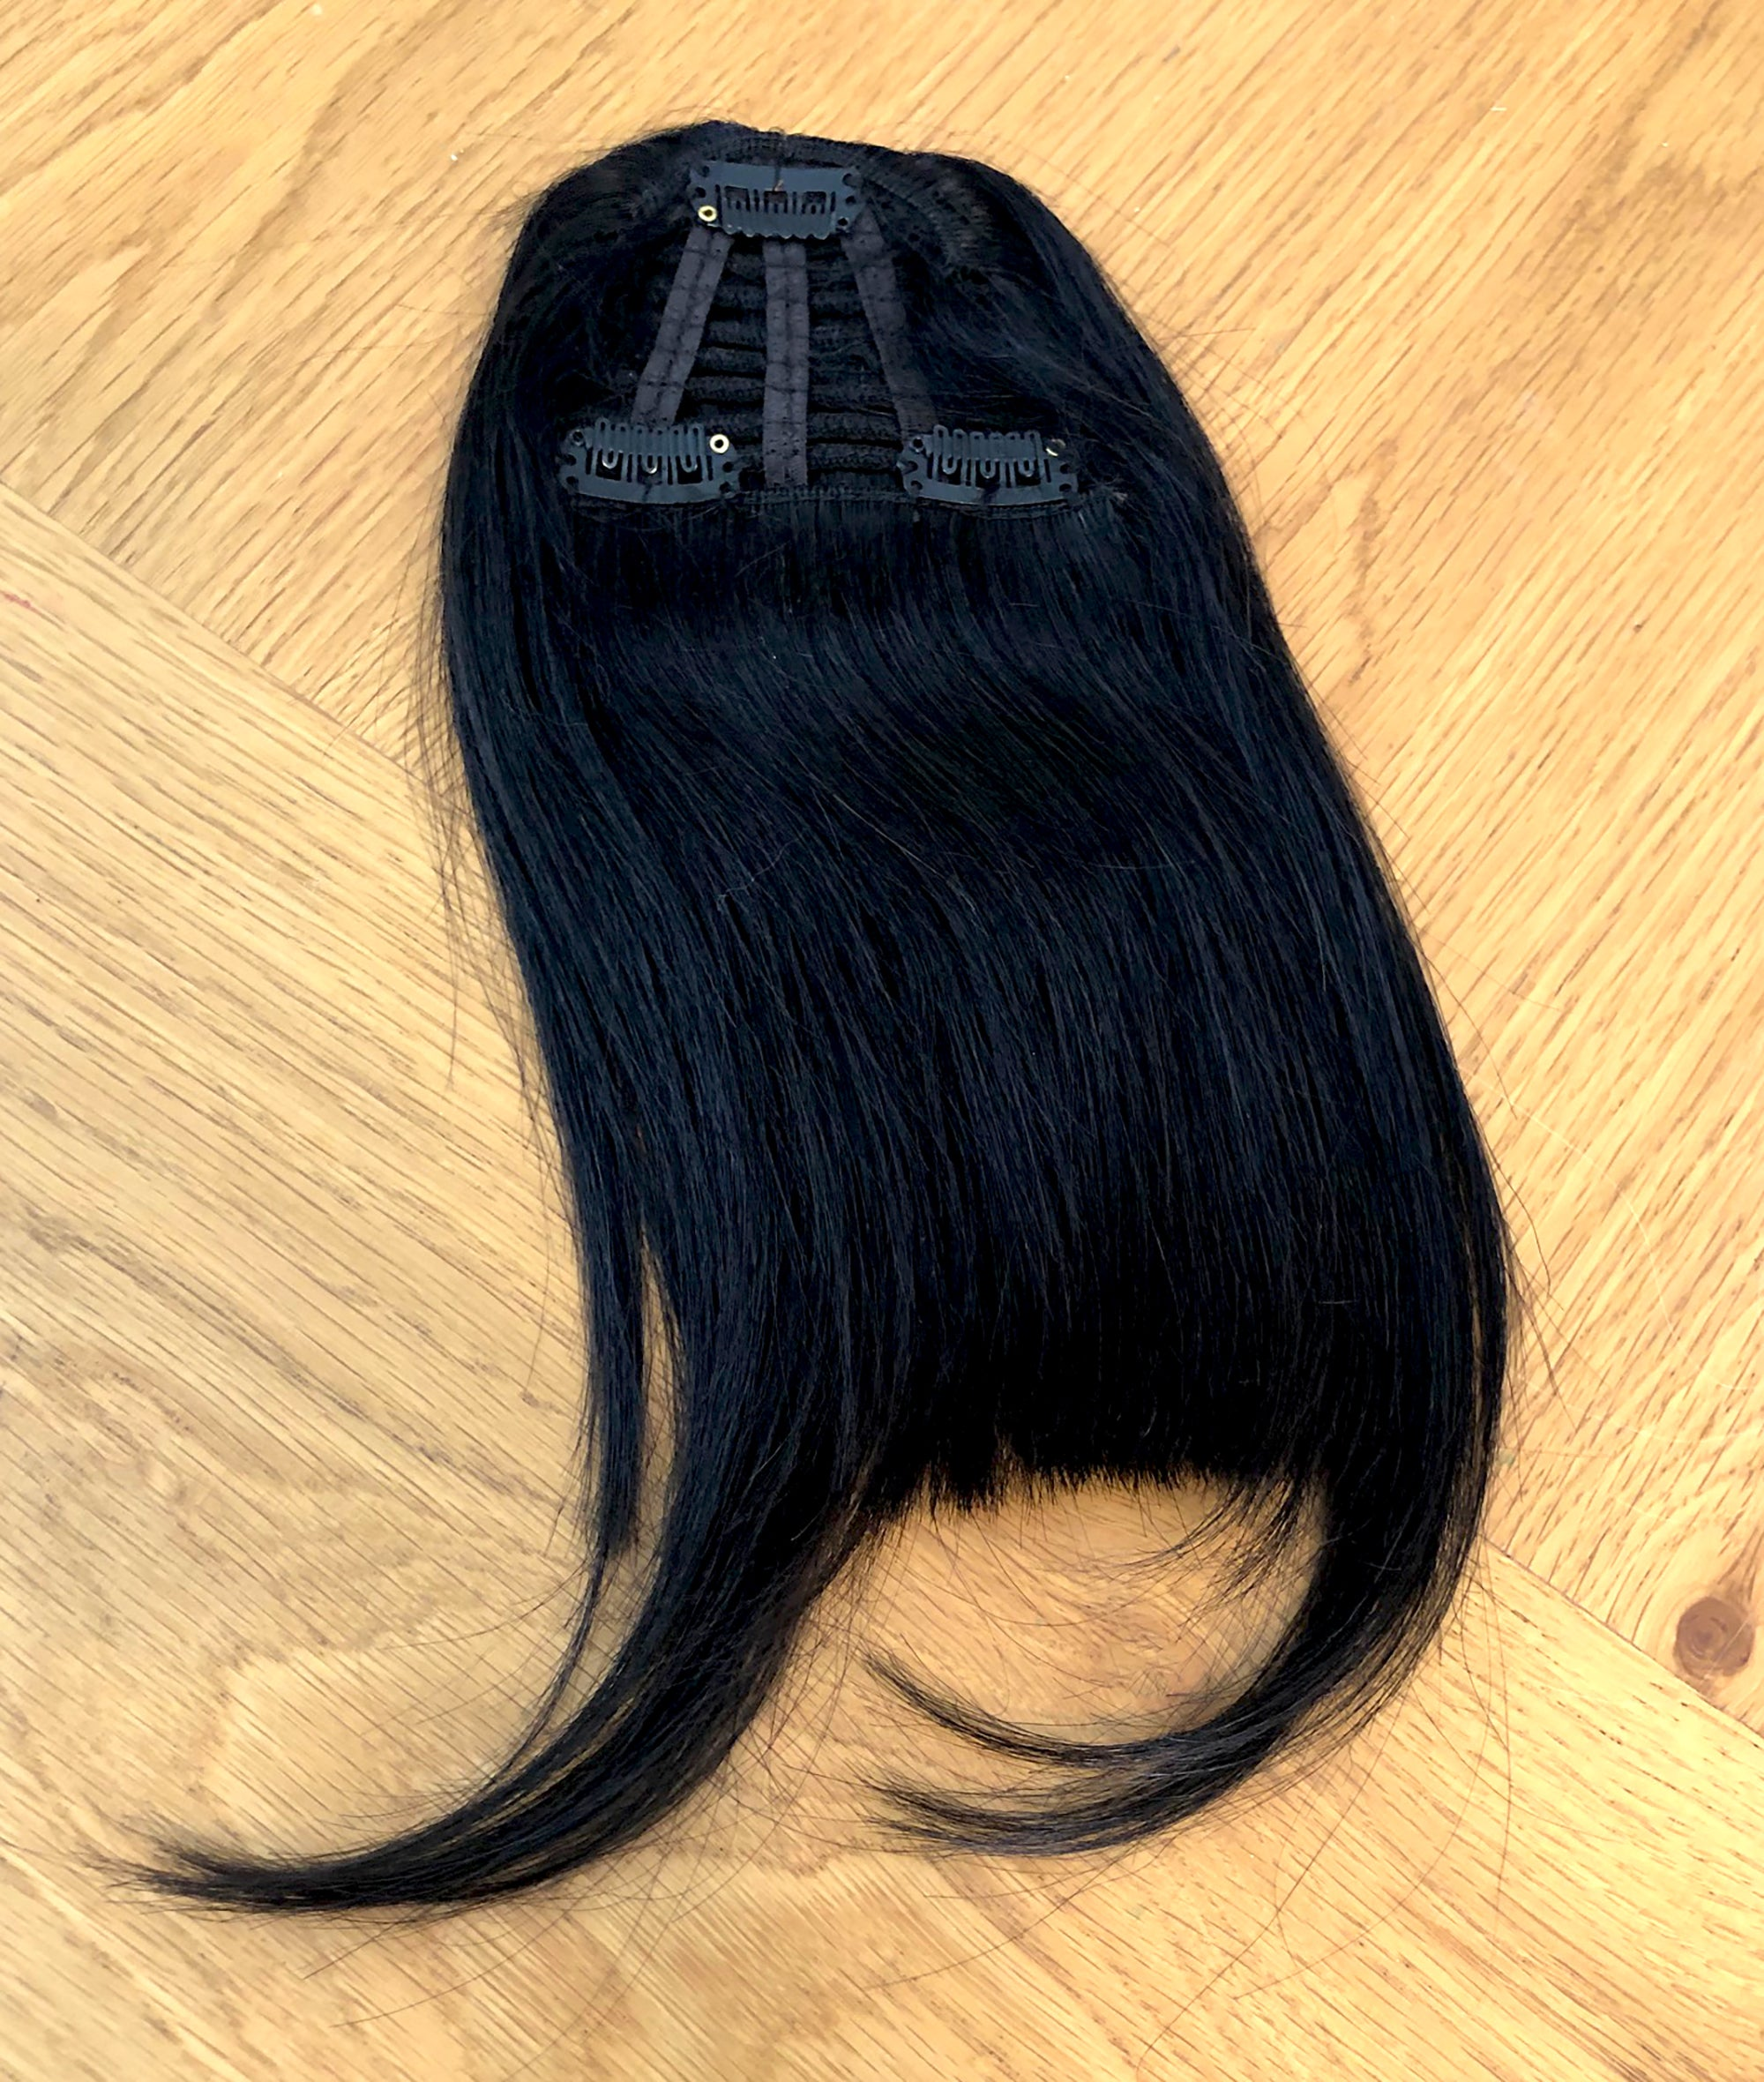 Clip in bangs hair extension mini wig 100% real human (Black)